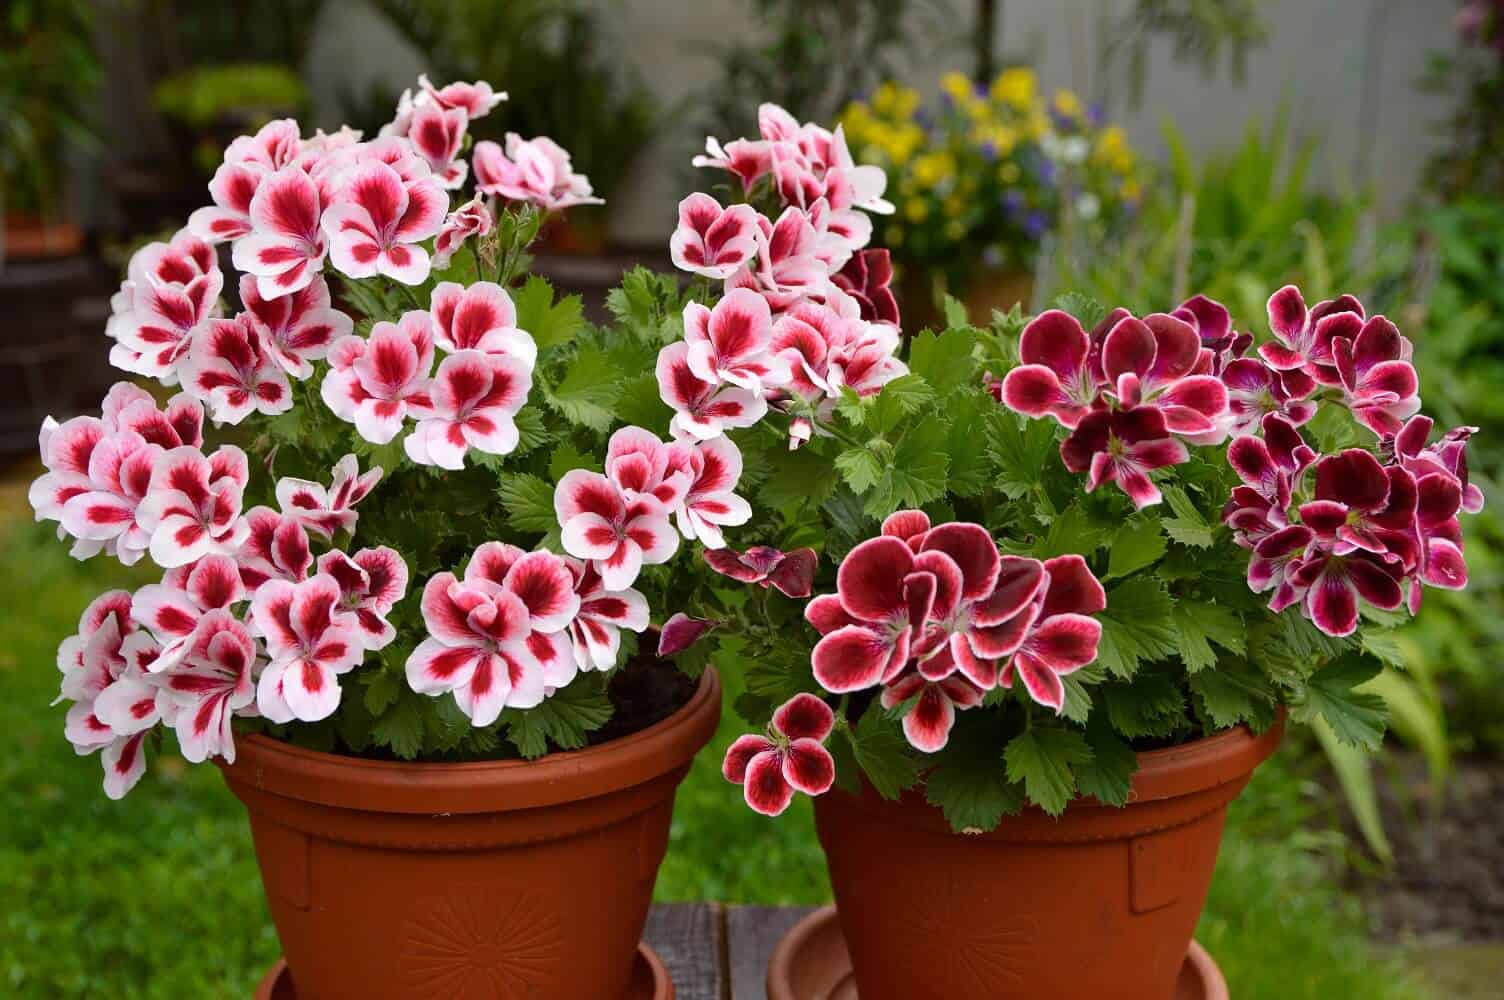 Geranium Care: How to Grow and Care for Geraniums in Pots